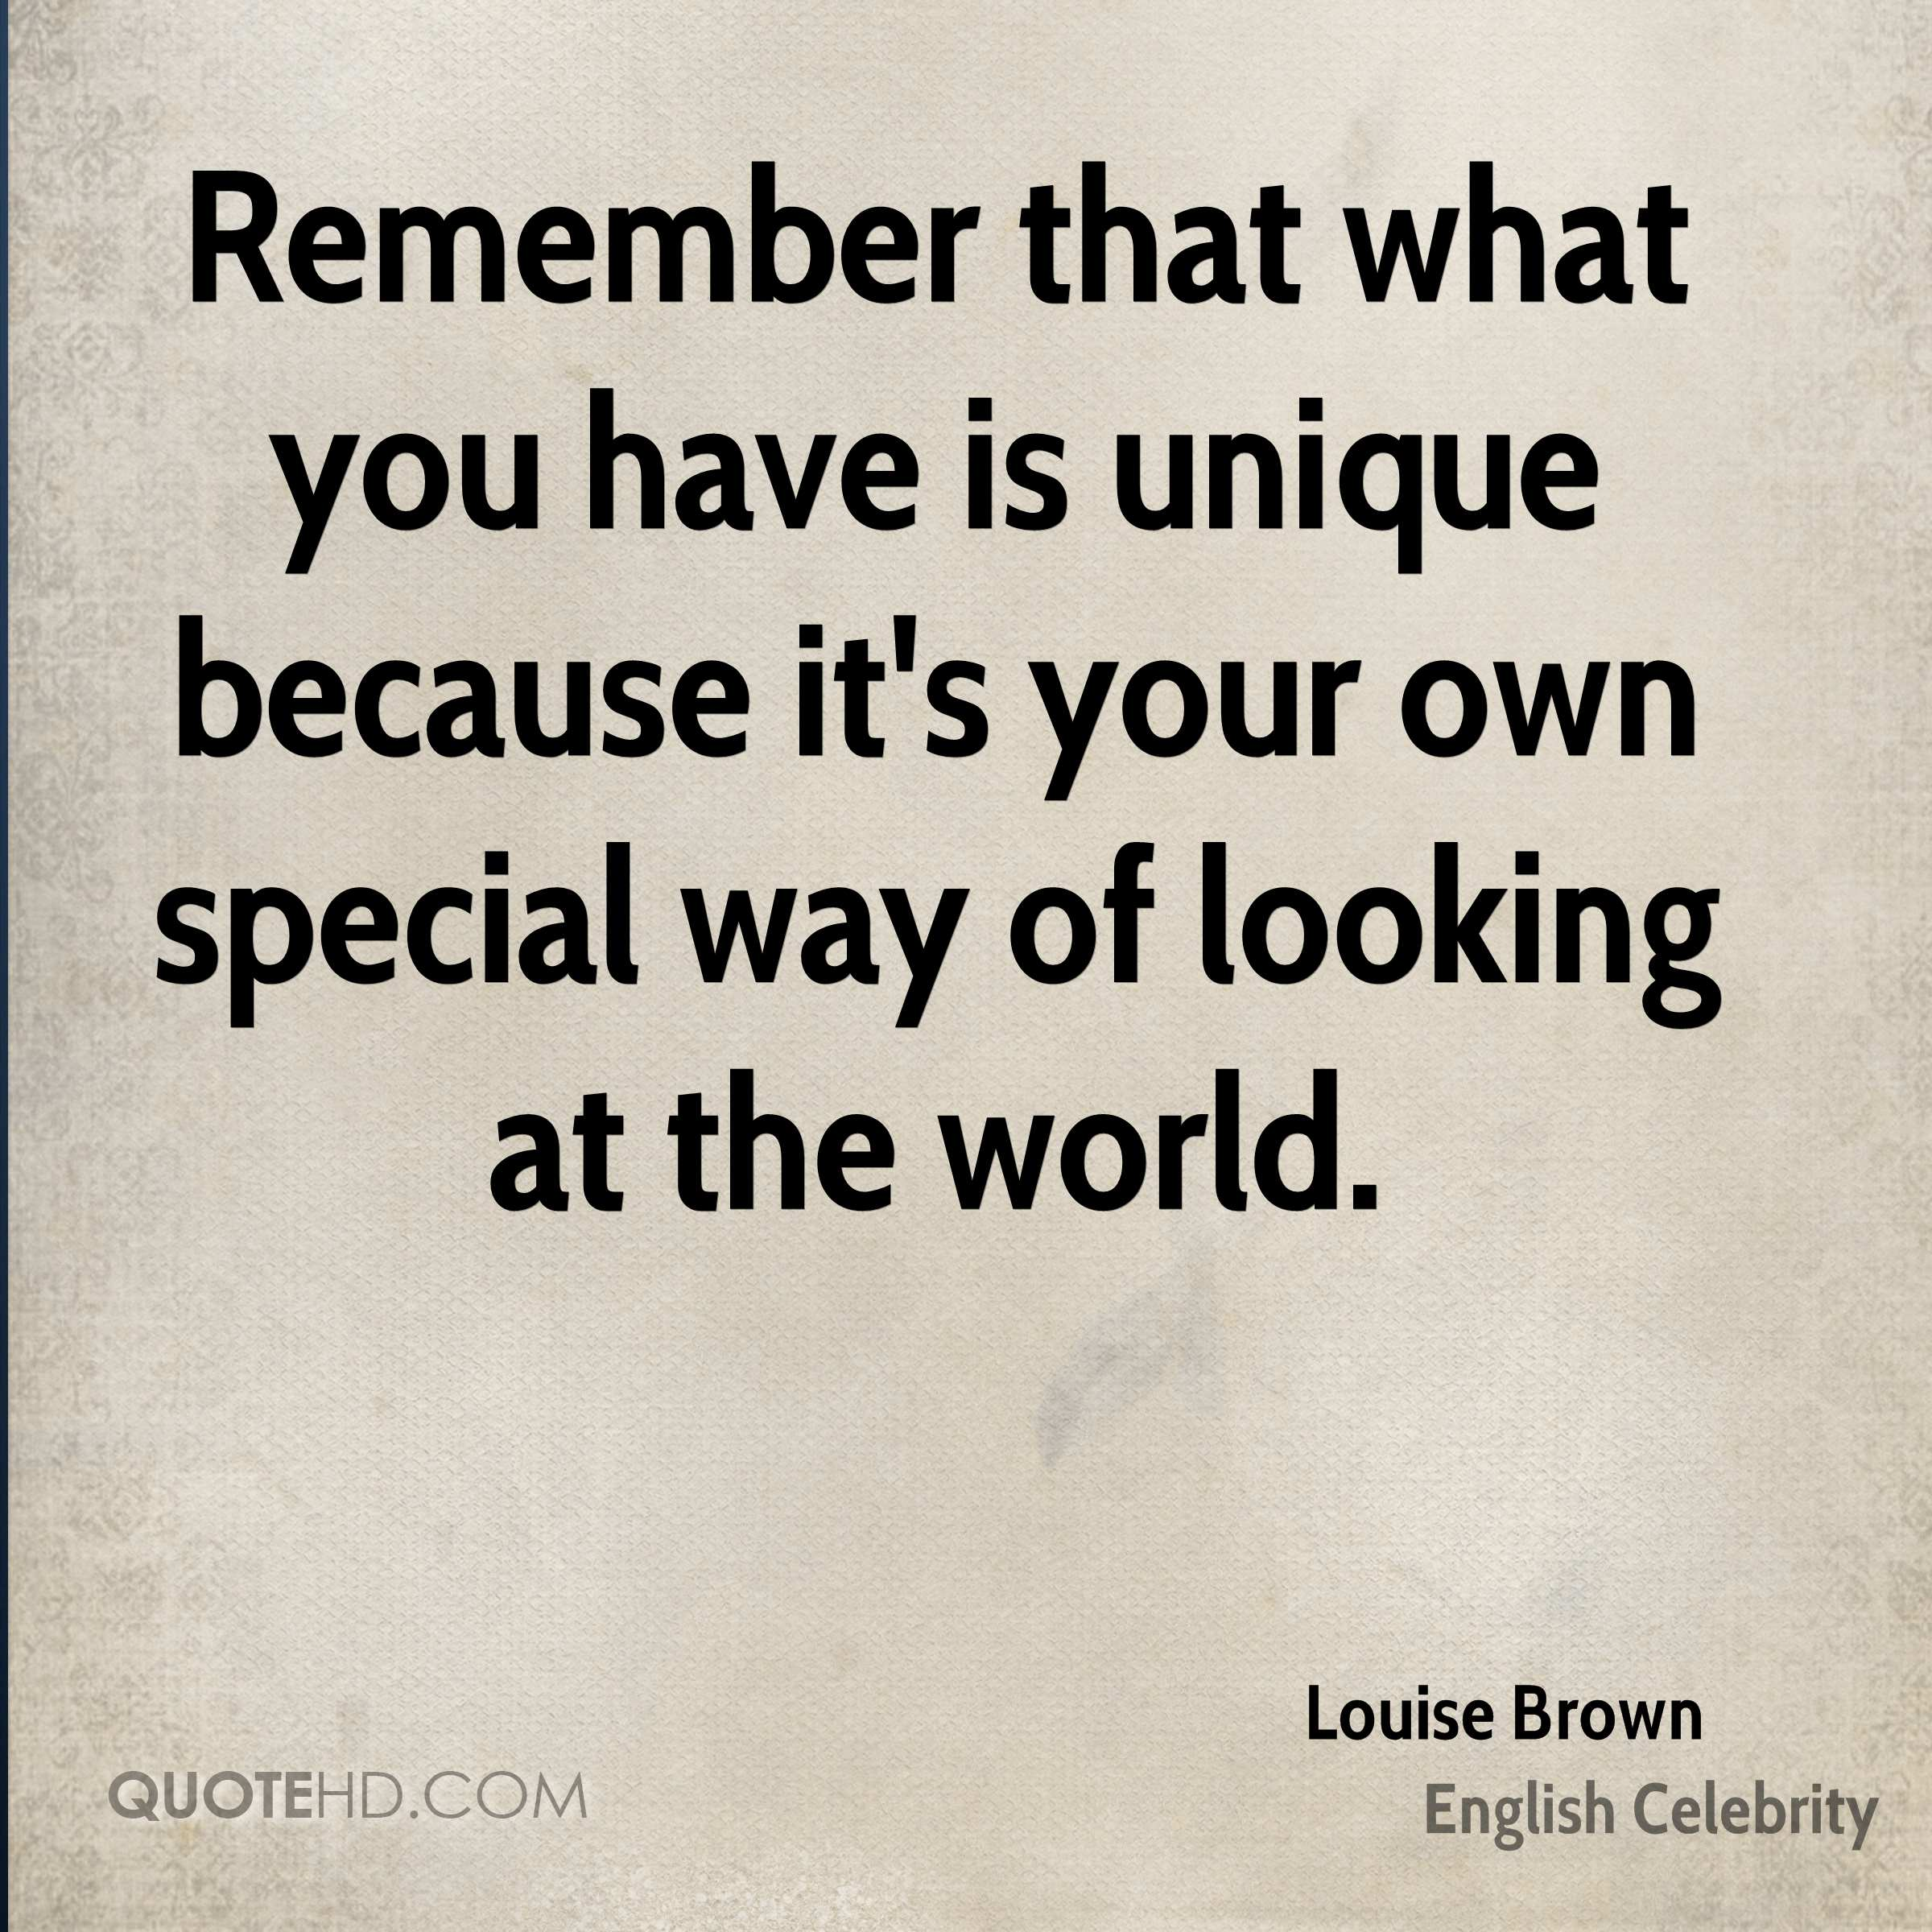 Remember that what you have is unique because it's your own special way of looking at the world.